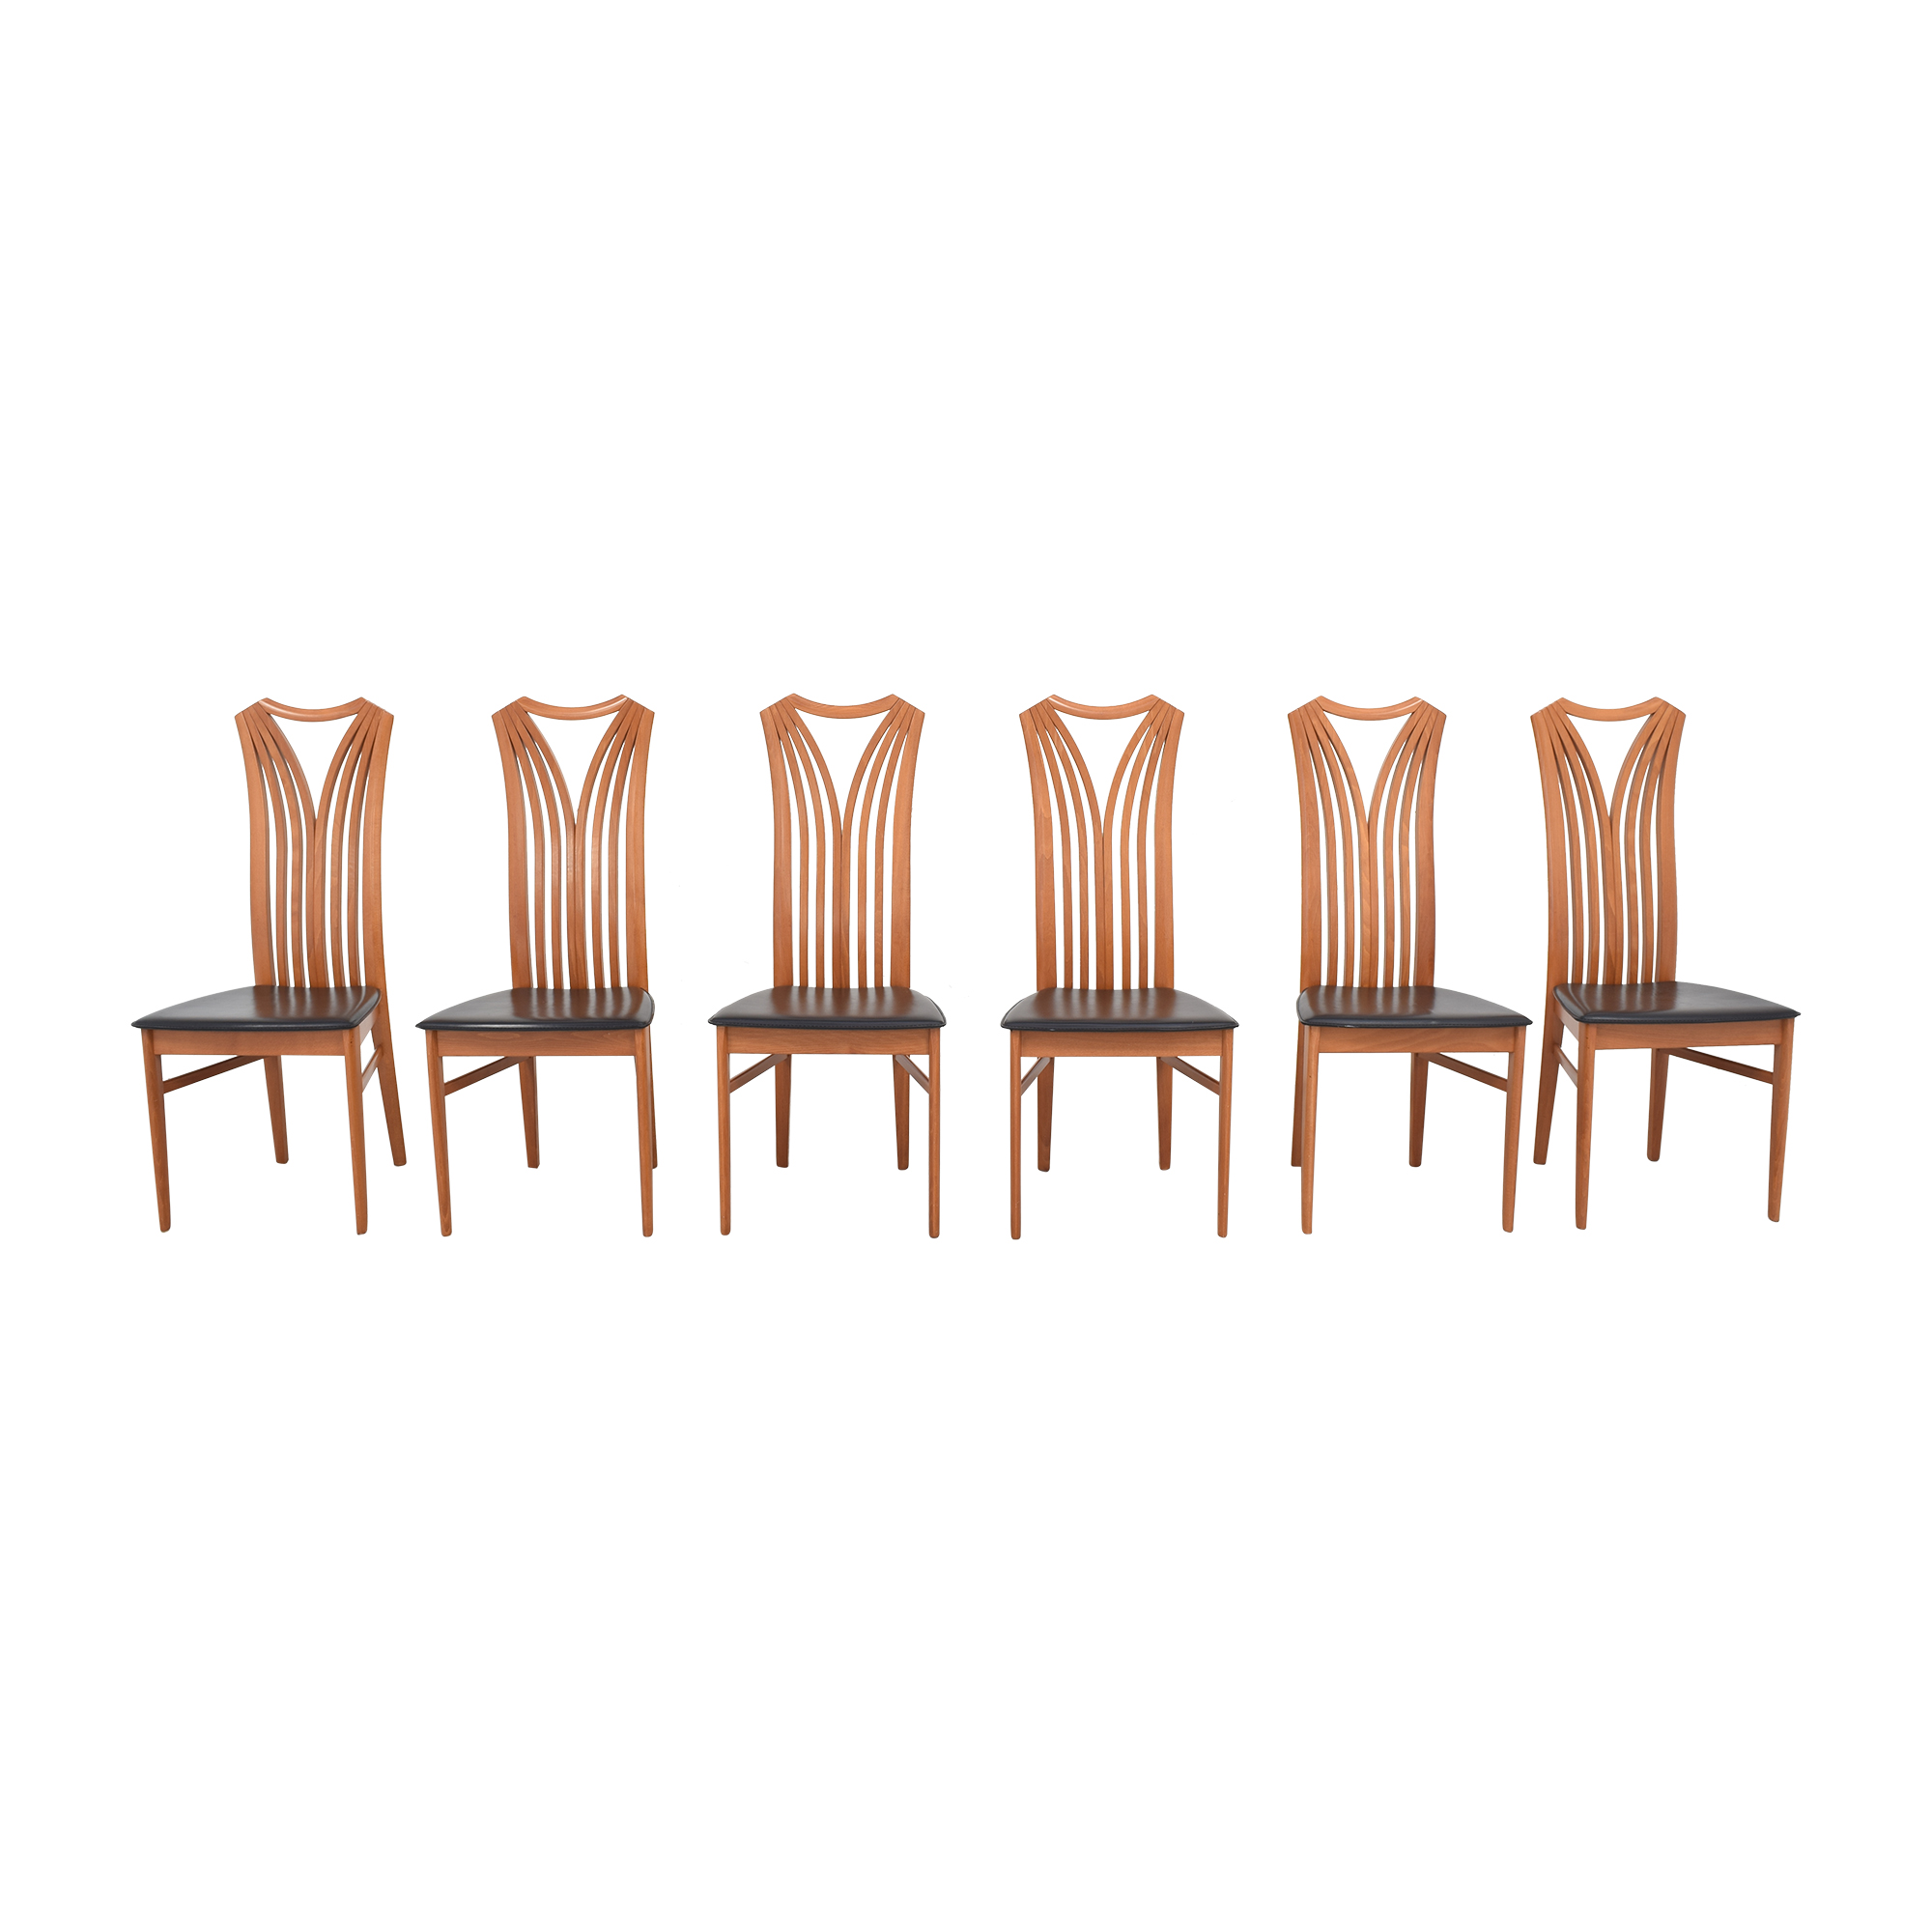 Maurice Villency Maurice Villency Style Dining Chairs for sale